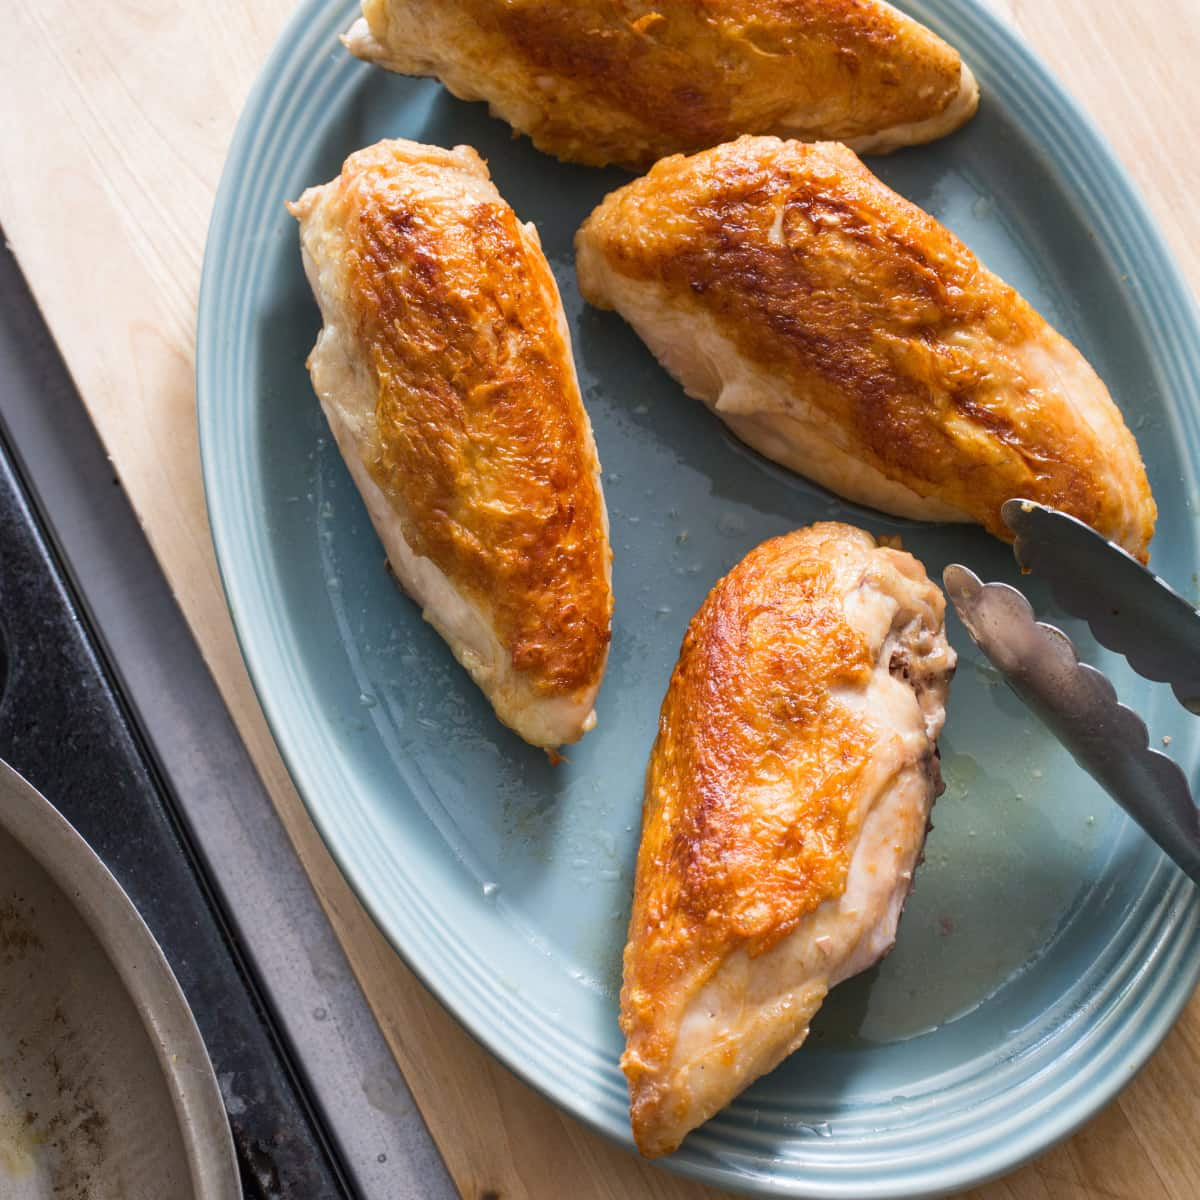 How long to bake split chicken breast at 425